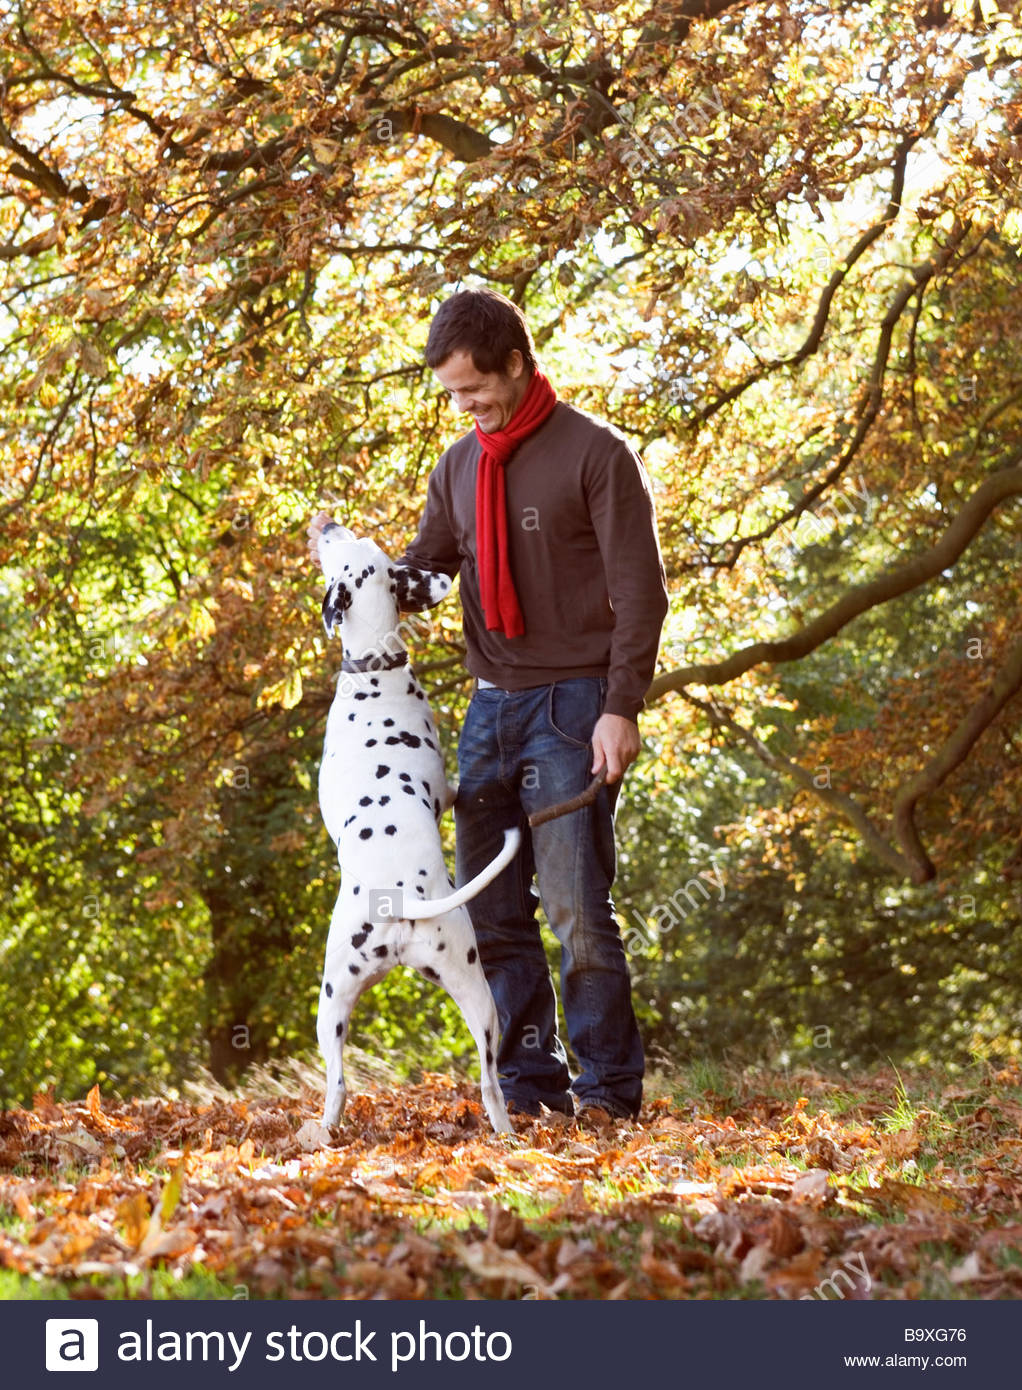 A young man playing with his dog amongst the autumn leaves - Stock Image